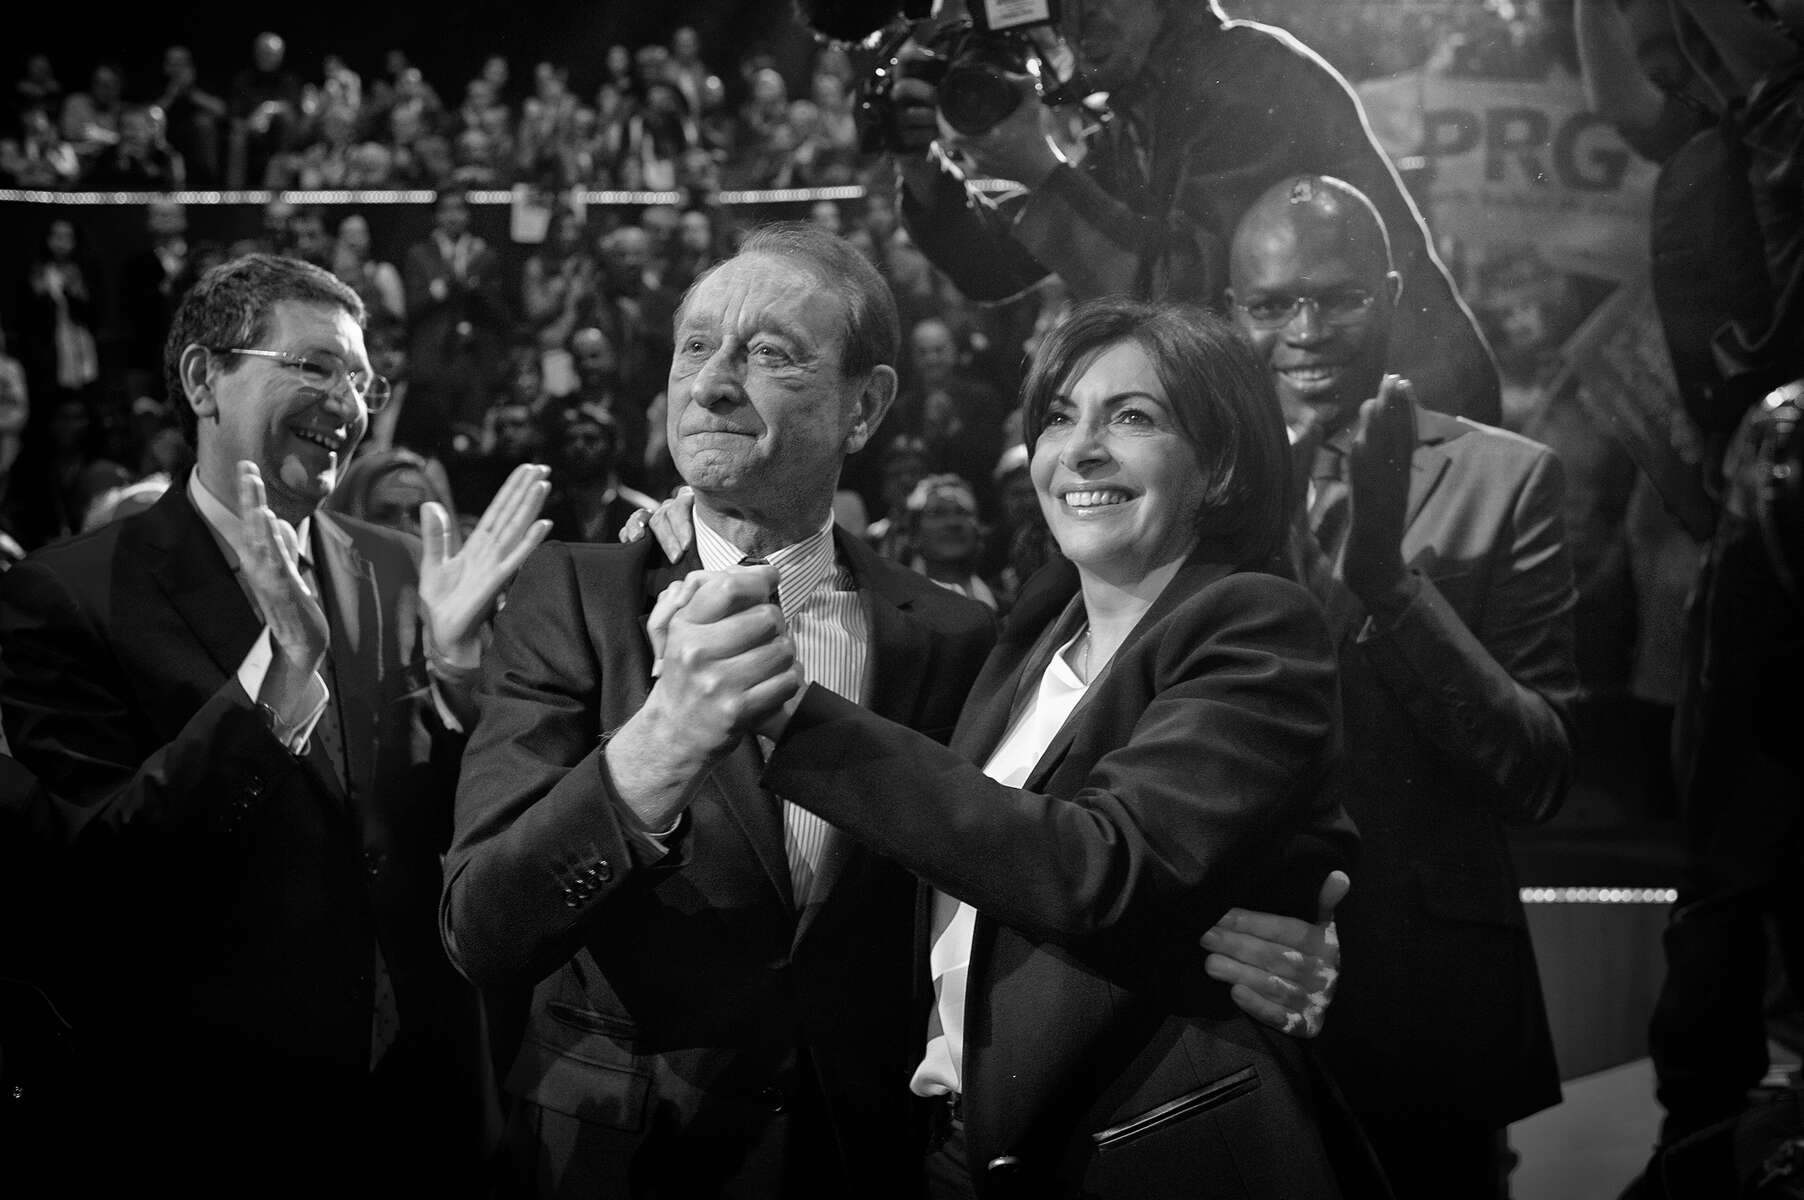 March 13, 2014.  PARIS, FRANCE- Mayoral candidate Anne Hidalgo embraces current Paris Mayor Bertrand Delanoë at her big rally at Paris' historic Cirque d'Hiver.  For the first time in France's history, Paris will have a woman as a mayor - either Socialist Anne Hidalgo or Center-Right Nathalie Kosciusko-Morizet.  Photo by Scout Tufankjian